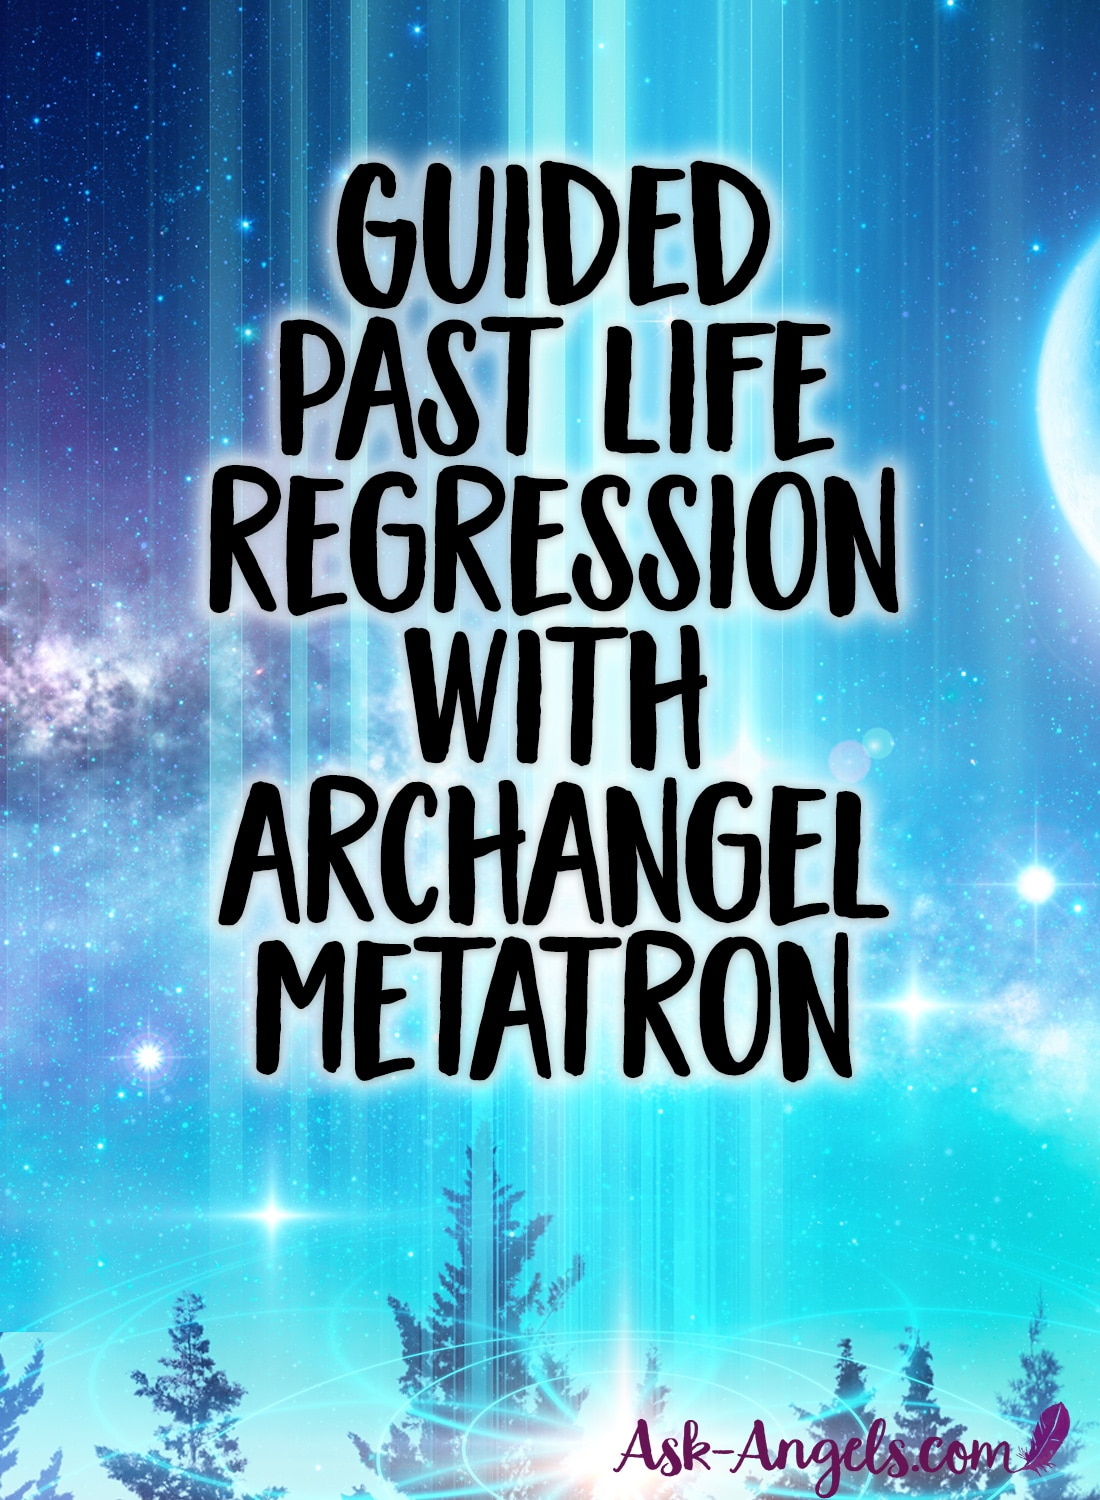 Guided Past Life Regression with Archangel Metatron